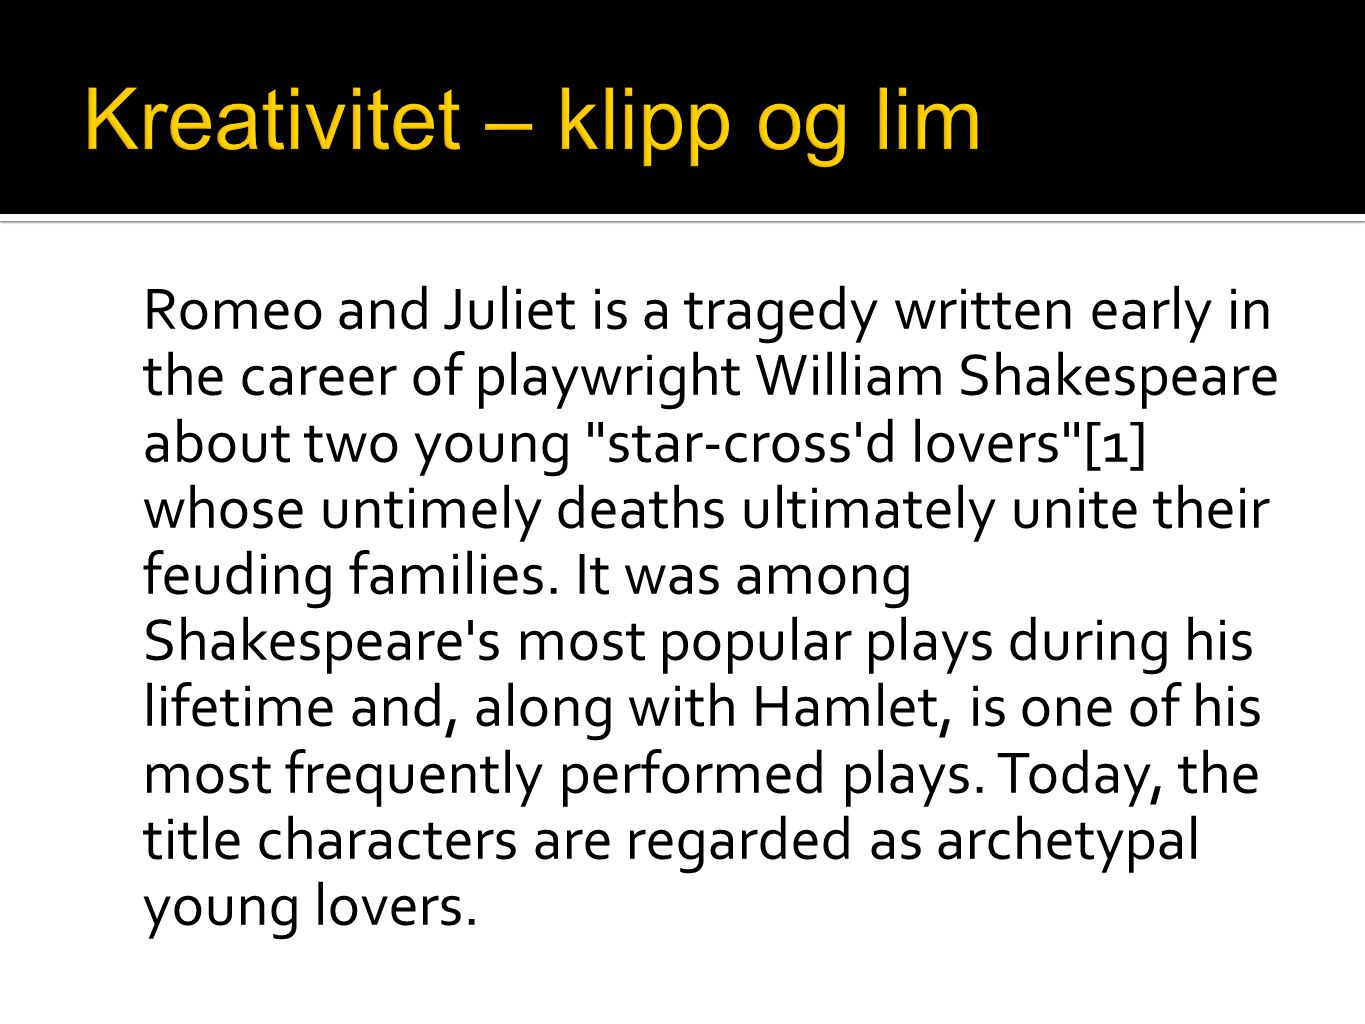 Romeo and Juliet is a tragedy written early in the career of playwright William Shakespeare about two young star-cross d lovers [1] whose untimely deaths ultimately unite their feuding families.